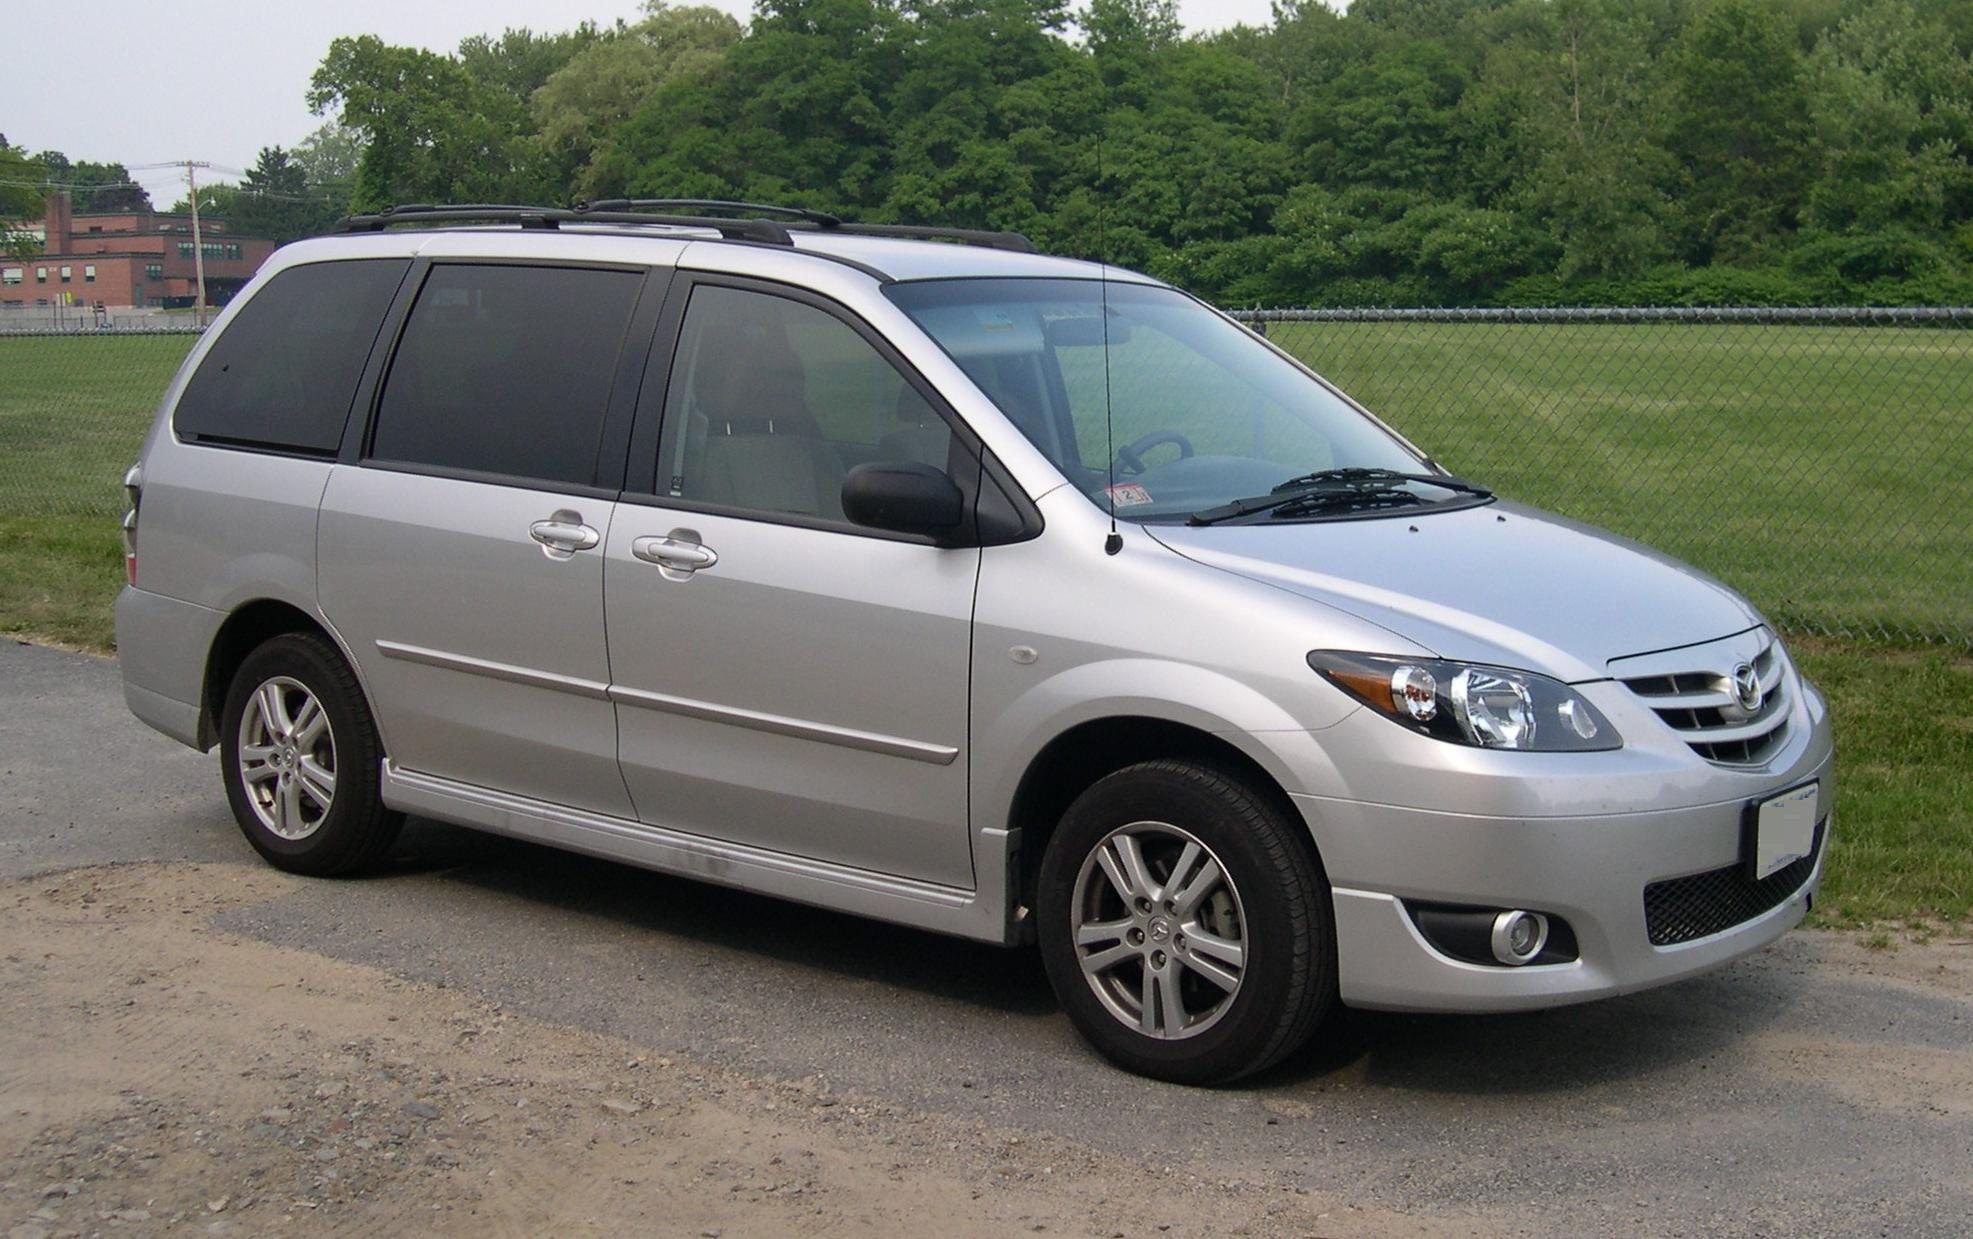 Mazda Van 2004 Review Amazing Pictures And Images Look